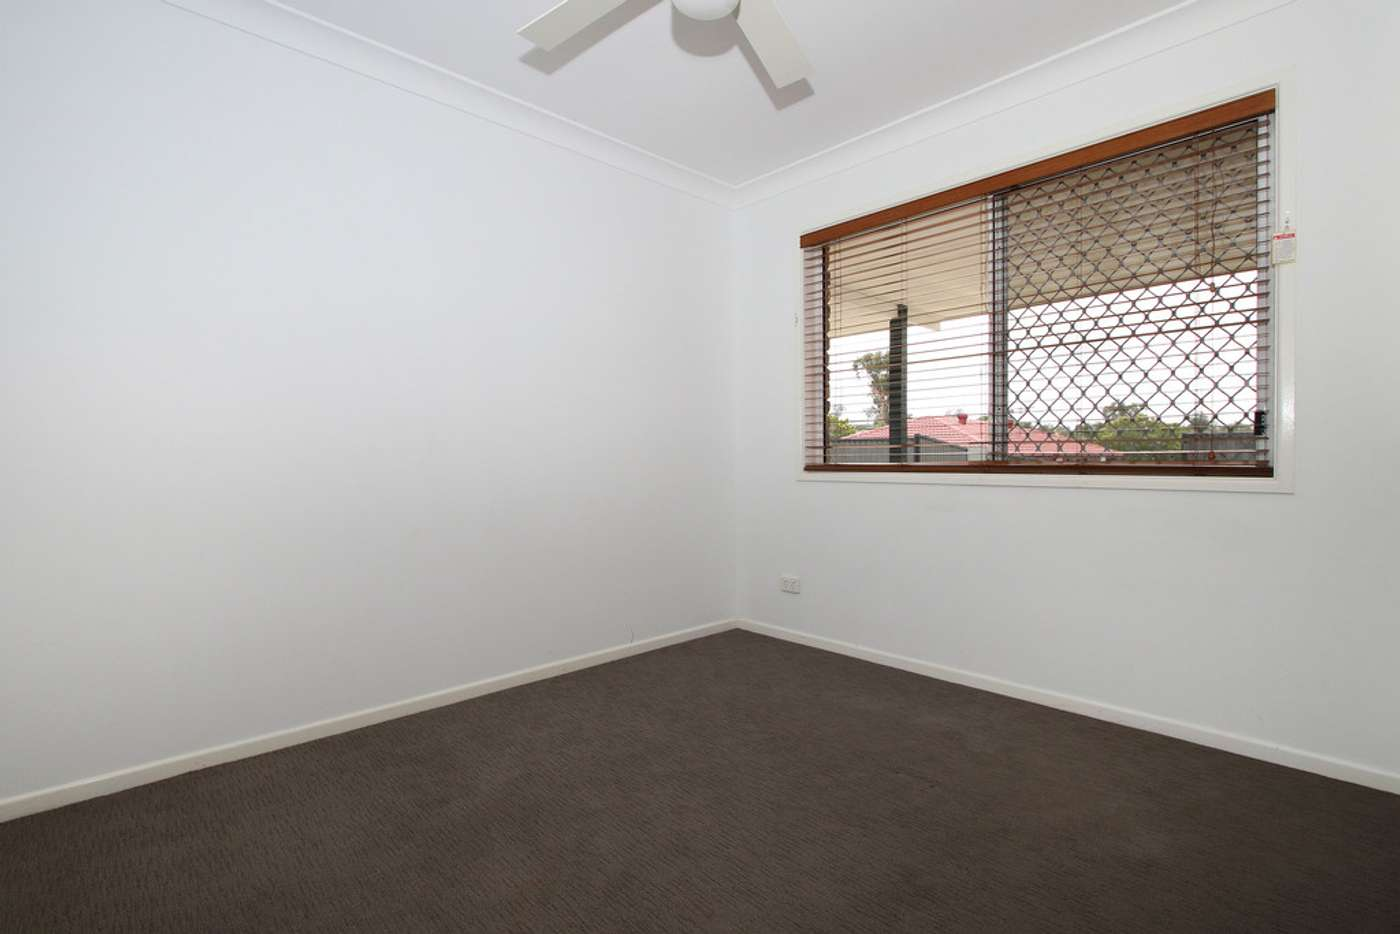 Sixth view of Homely house listing, 19 Clifton Crescent, Durack QLD 4077